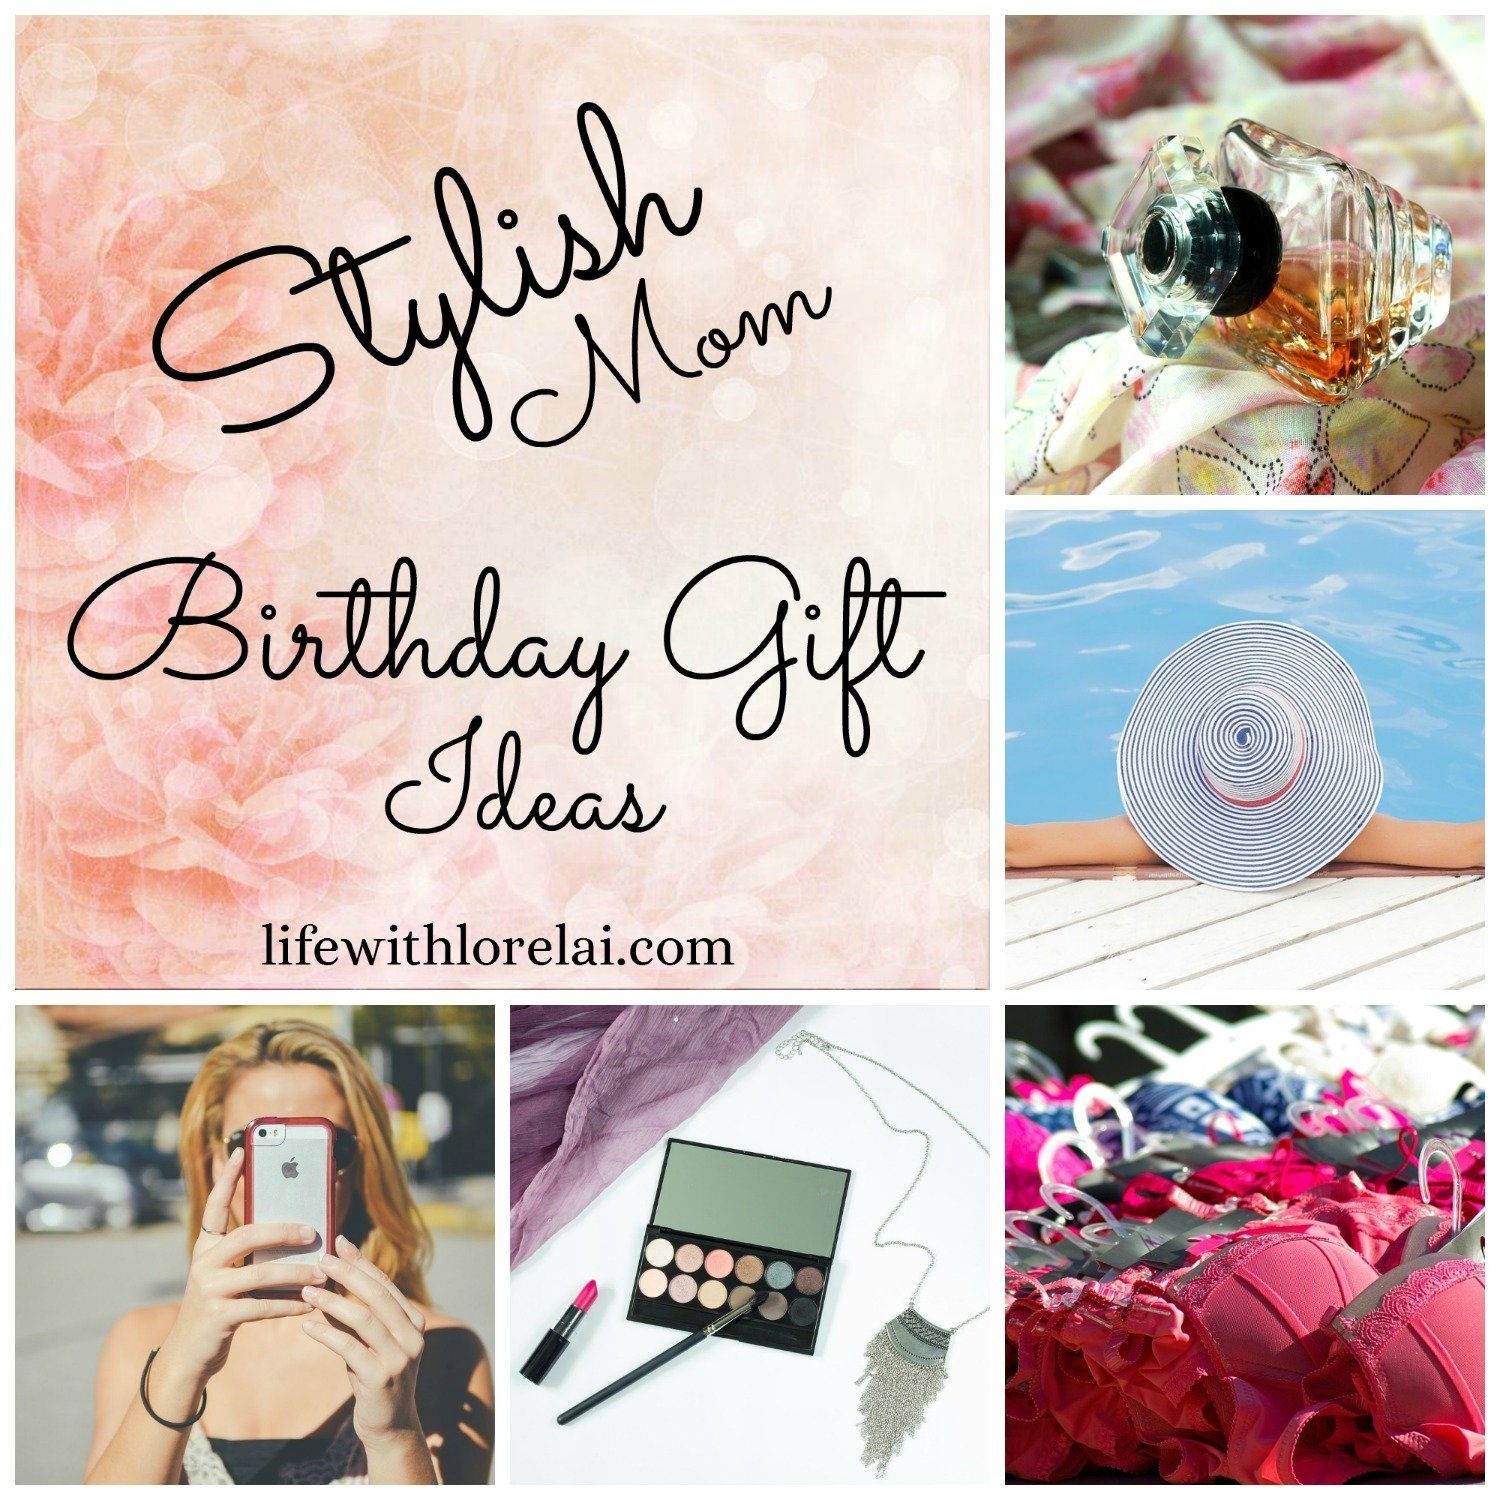 10 Stylish Birthday Gifts For Mom Ideas birthday gift ideas for the stylish mom life with lorelai 13 2020